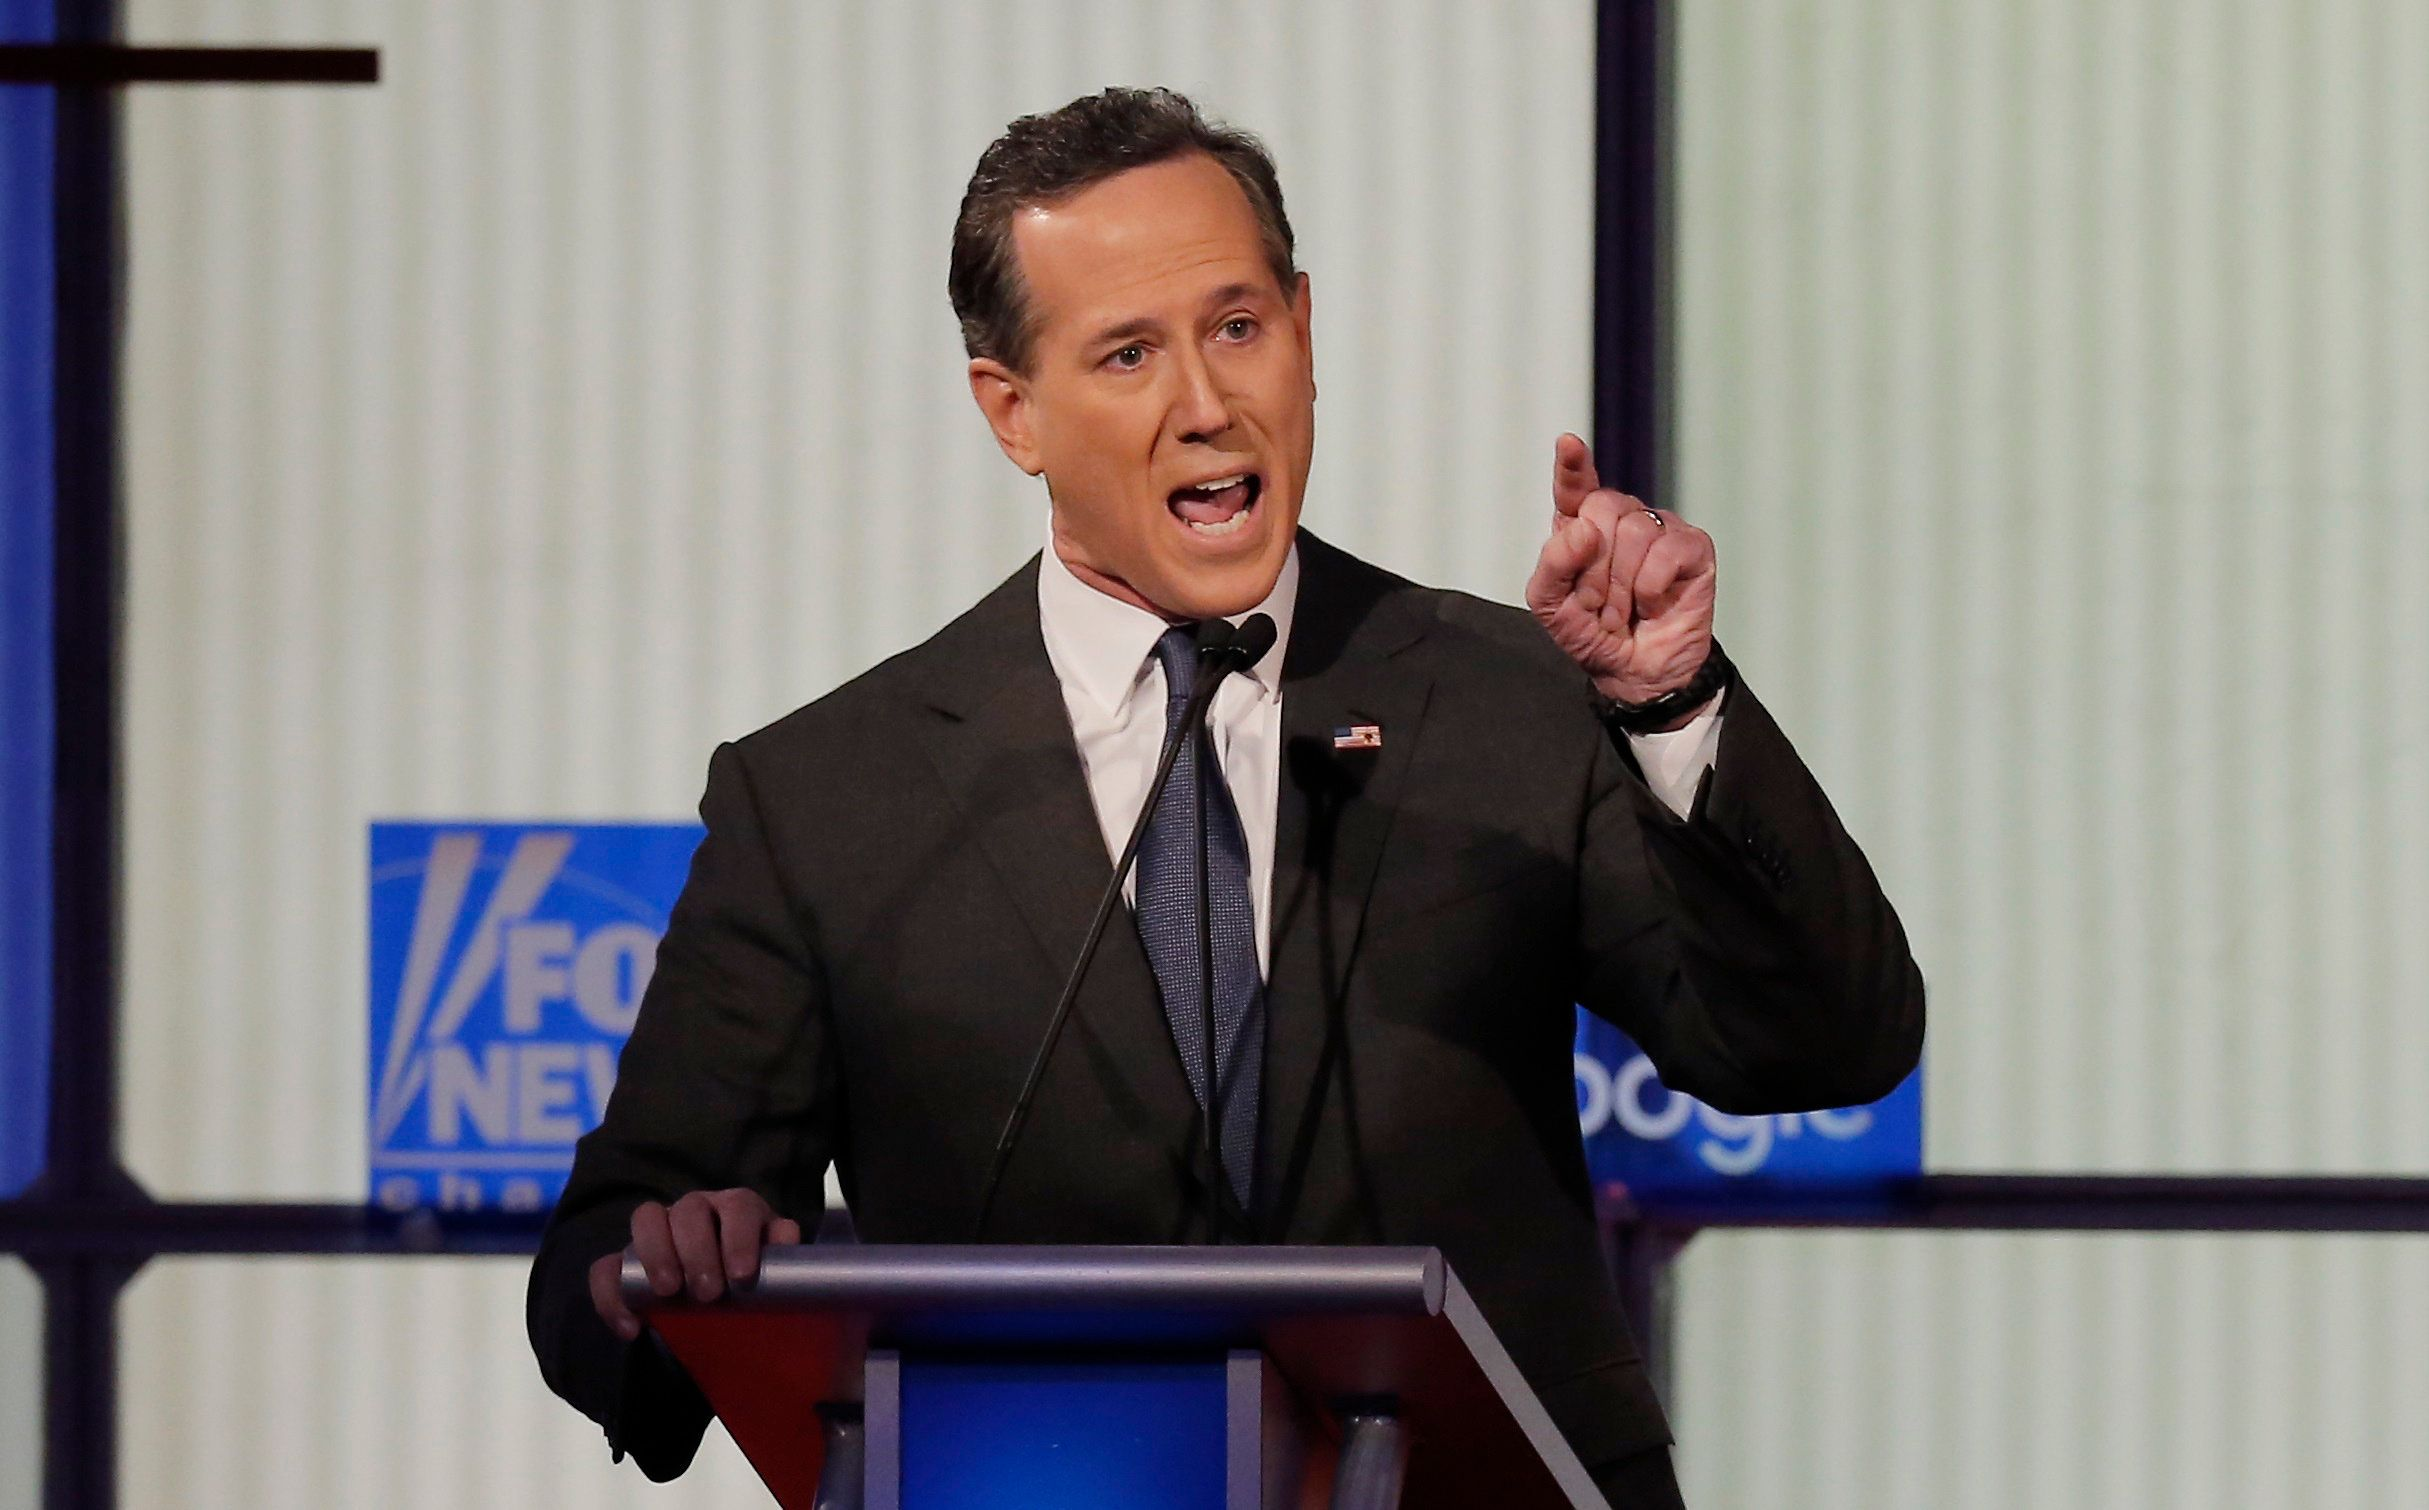 Republican U.S. presidential candidate and former U.S. Senator Rick Santorum speaks during a forum for the lower polling candidates held by Fox News before the U.S. Republican presidential candidates debate in Des Moines, Iowa January 28, 2016. REUTERS/Jim Young/Files